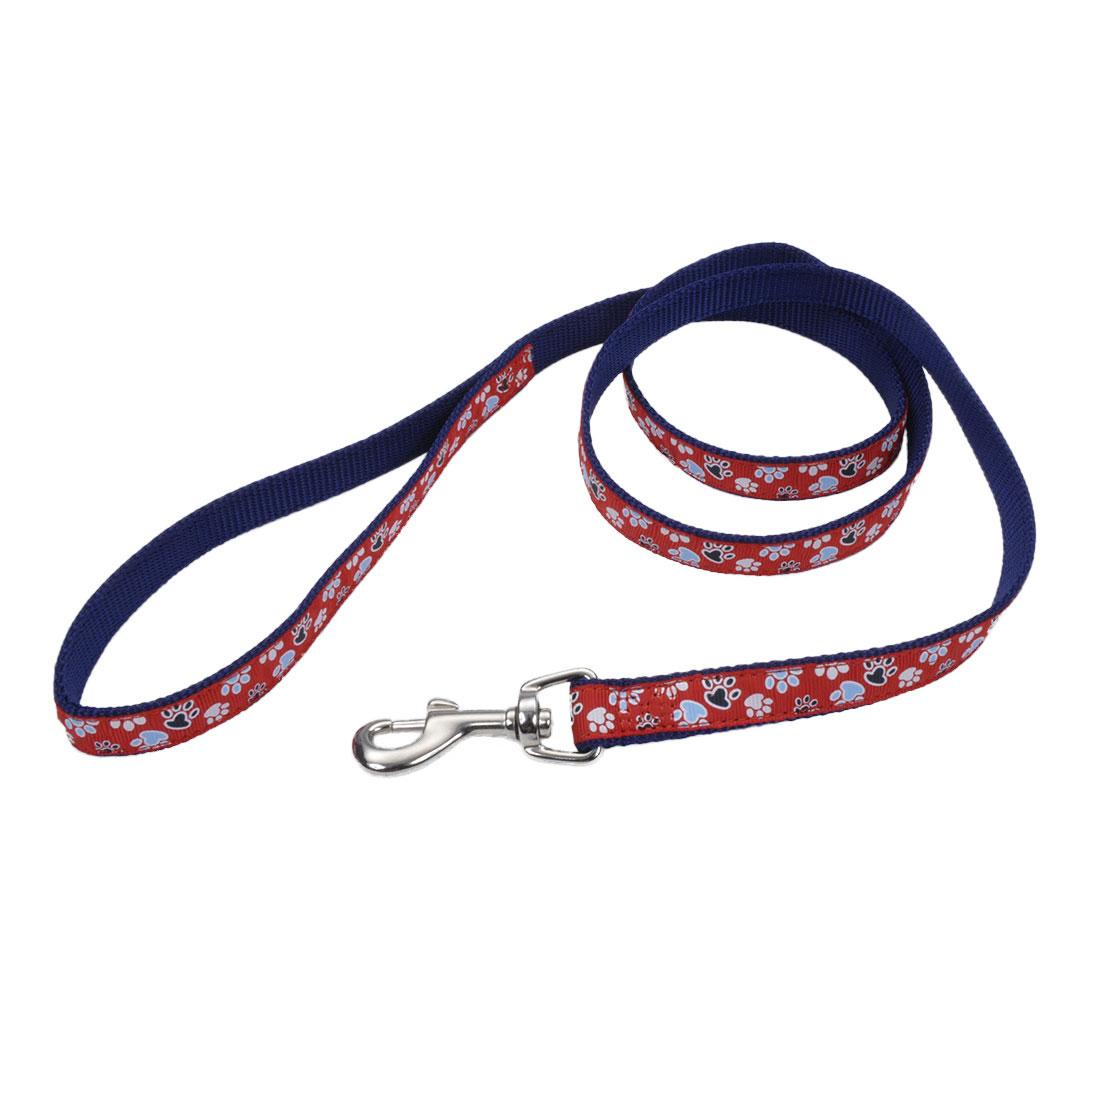 Ribbon Dog Leash, Red with Paws Image